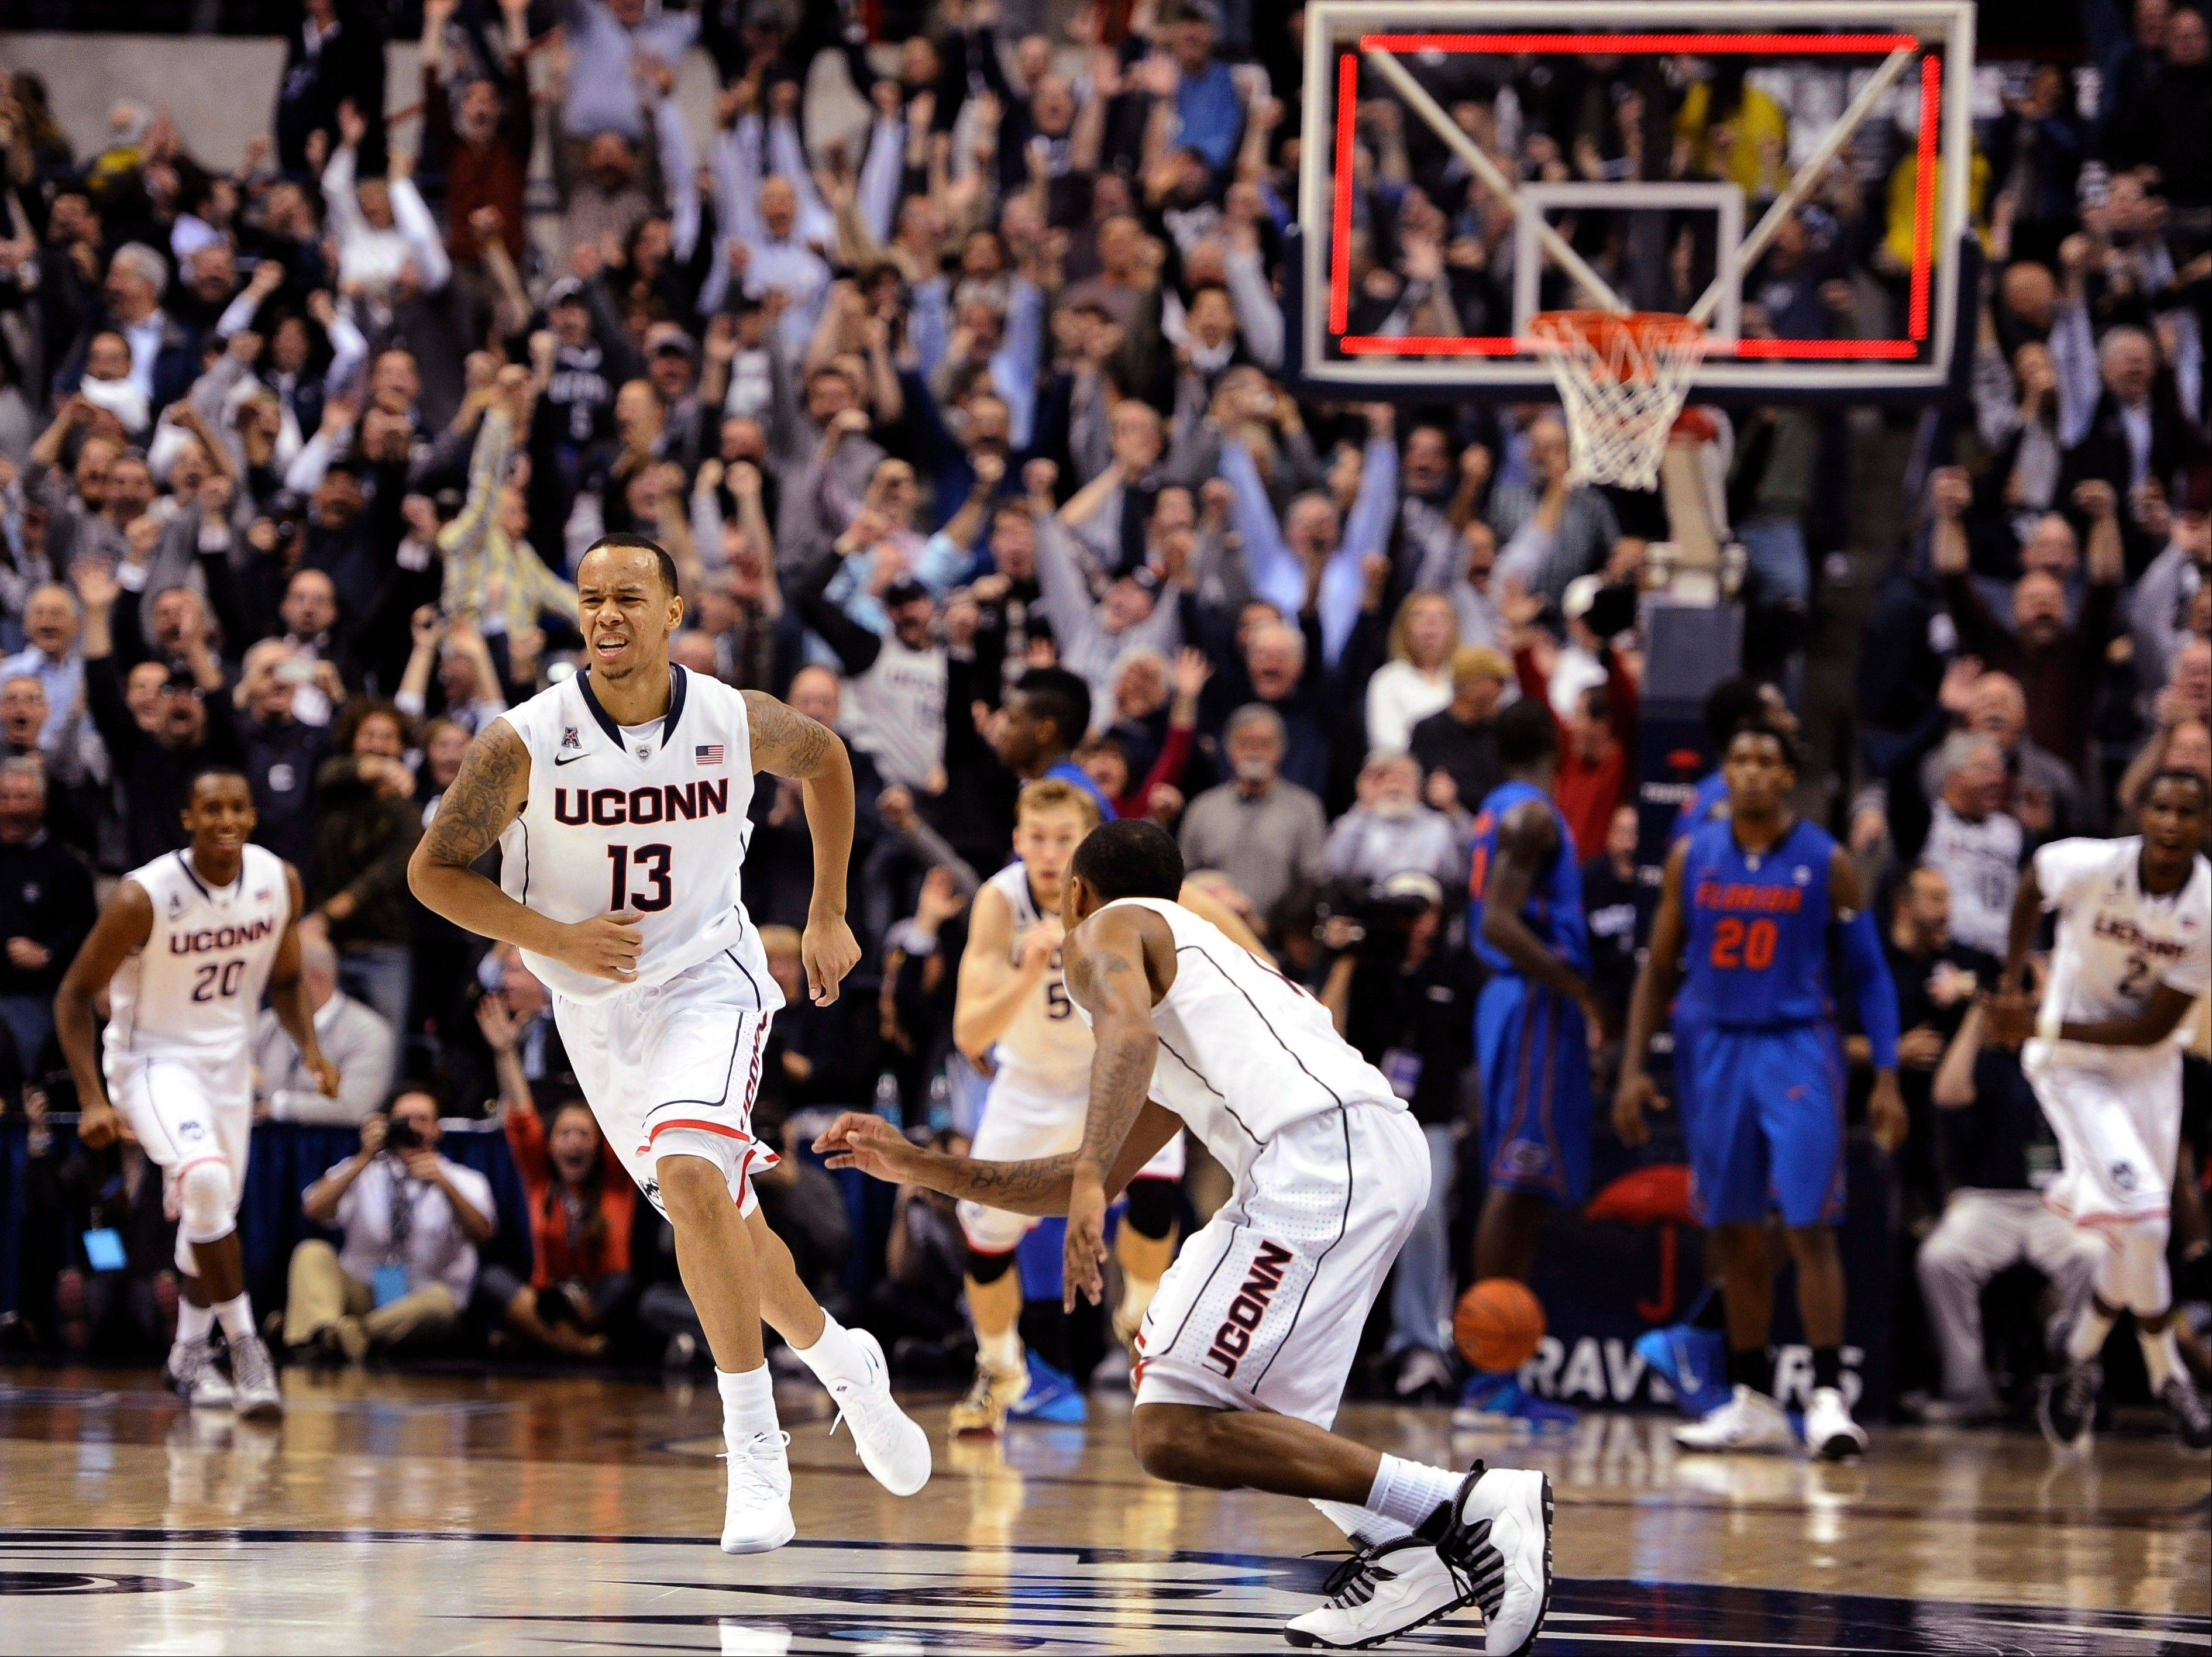 Connecticut's Shabazz Napier, left, and Ryan Boatright, right, react after Napier hits the game winning basket at the end an NCAA college basketball game Monday against Florida in Storrs, Conn. Connecticut won 65-64.